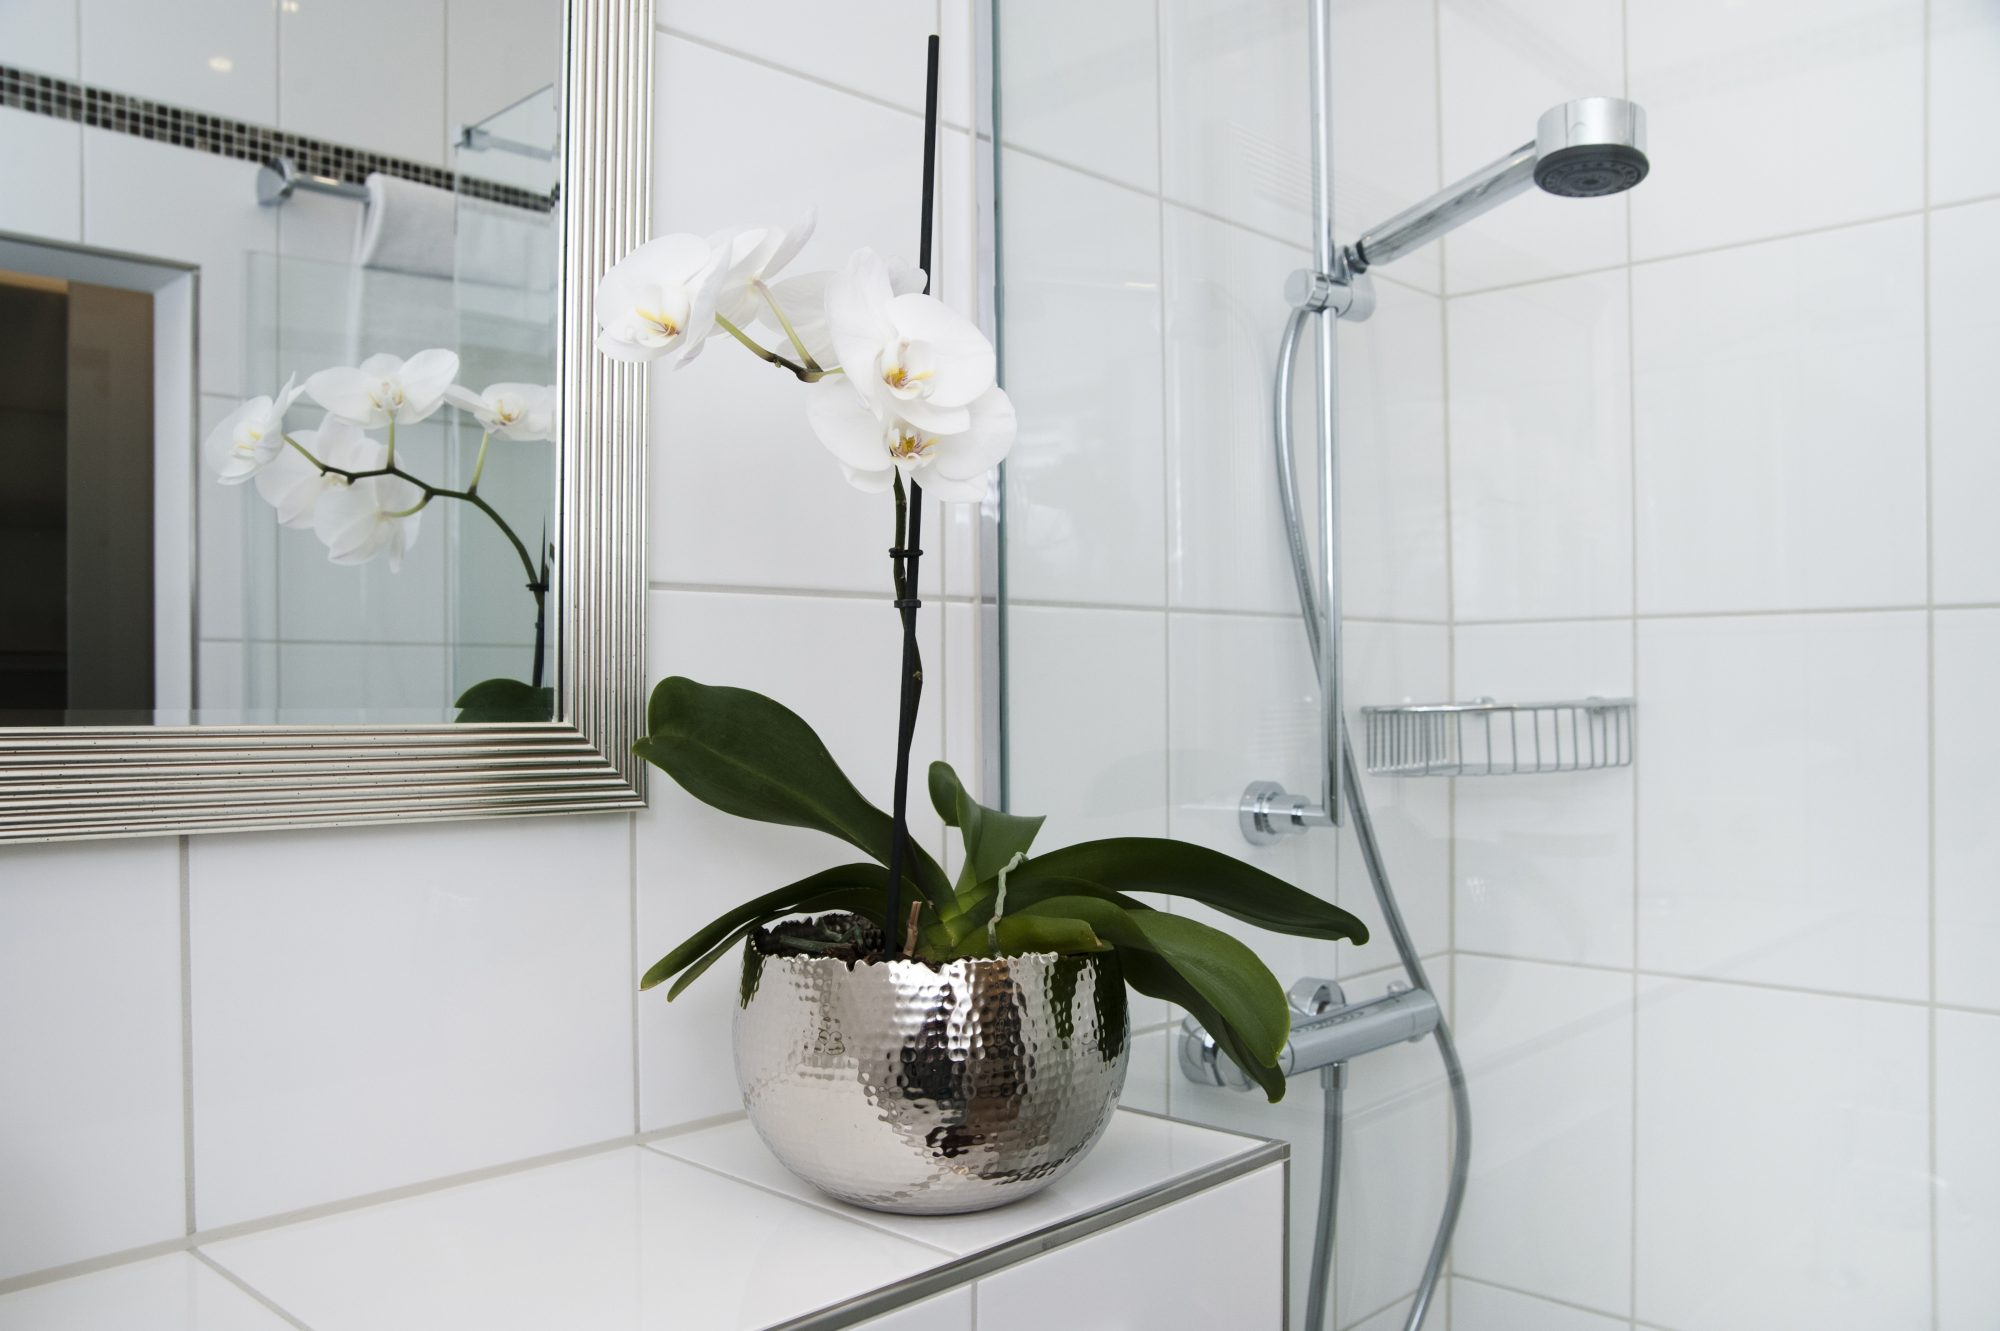 Best Shower Plants, Orchid in Shower